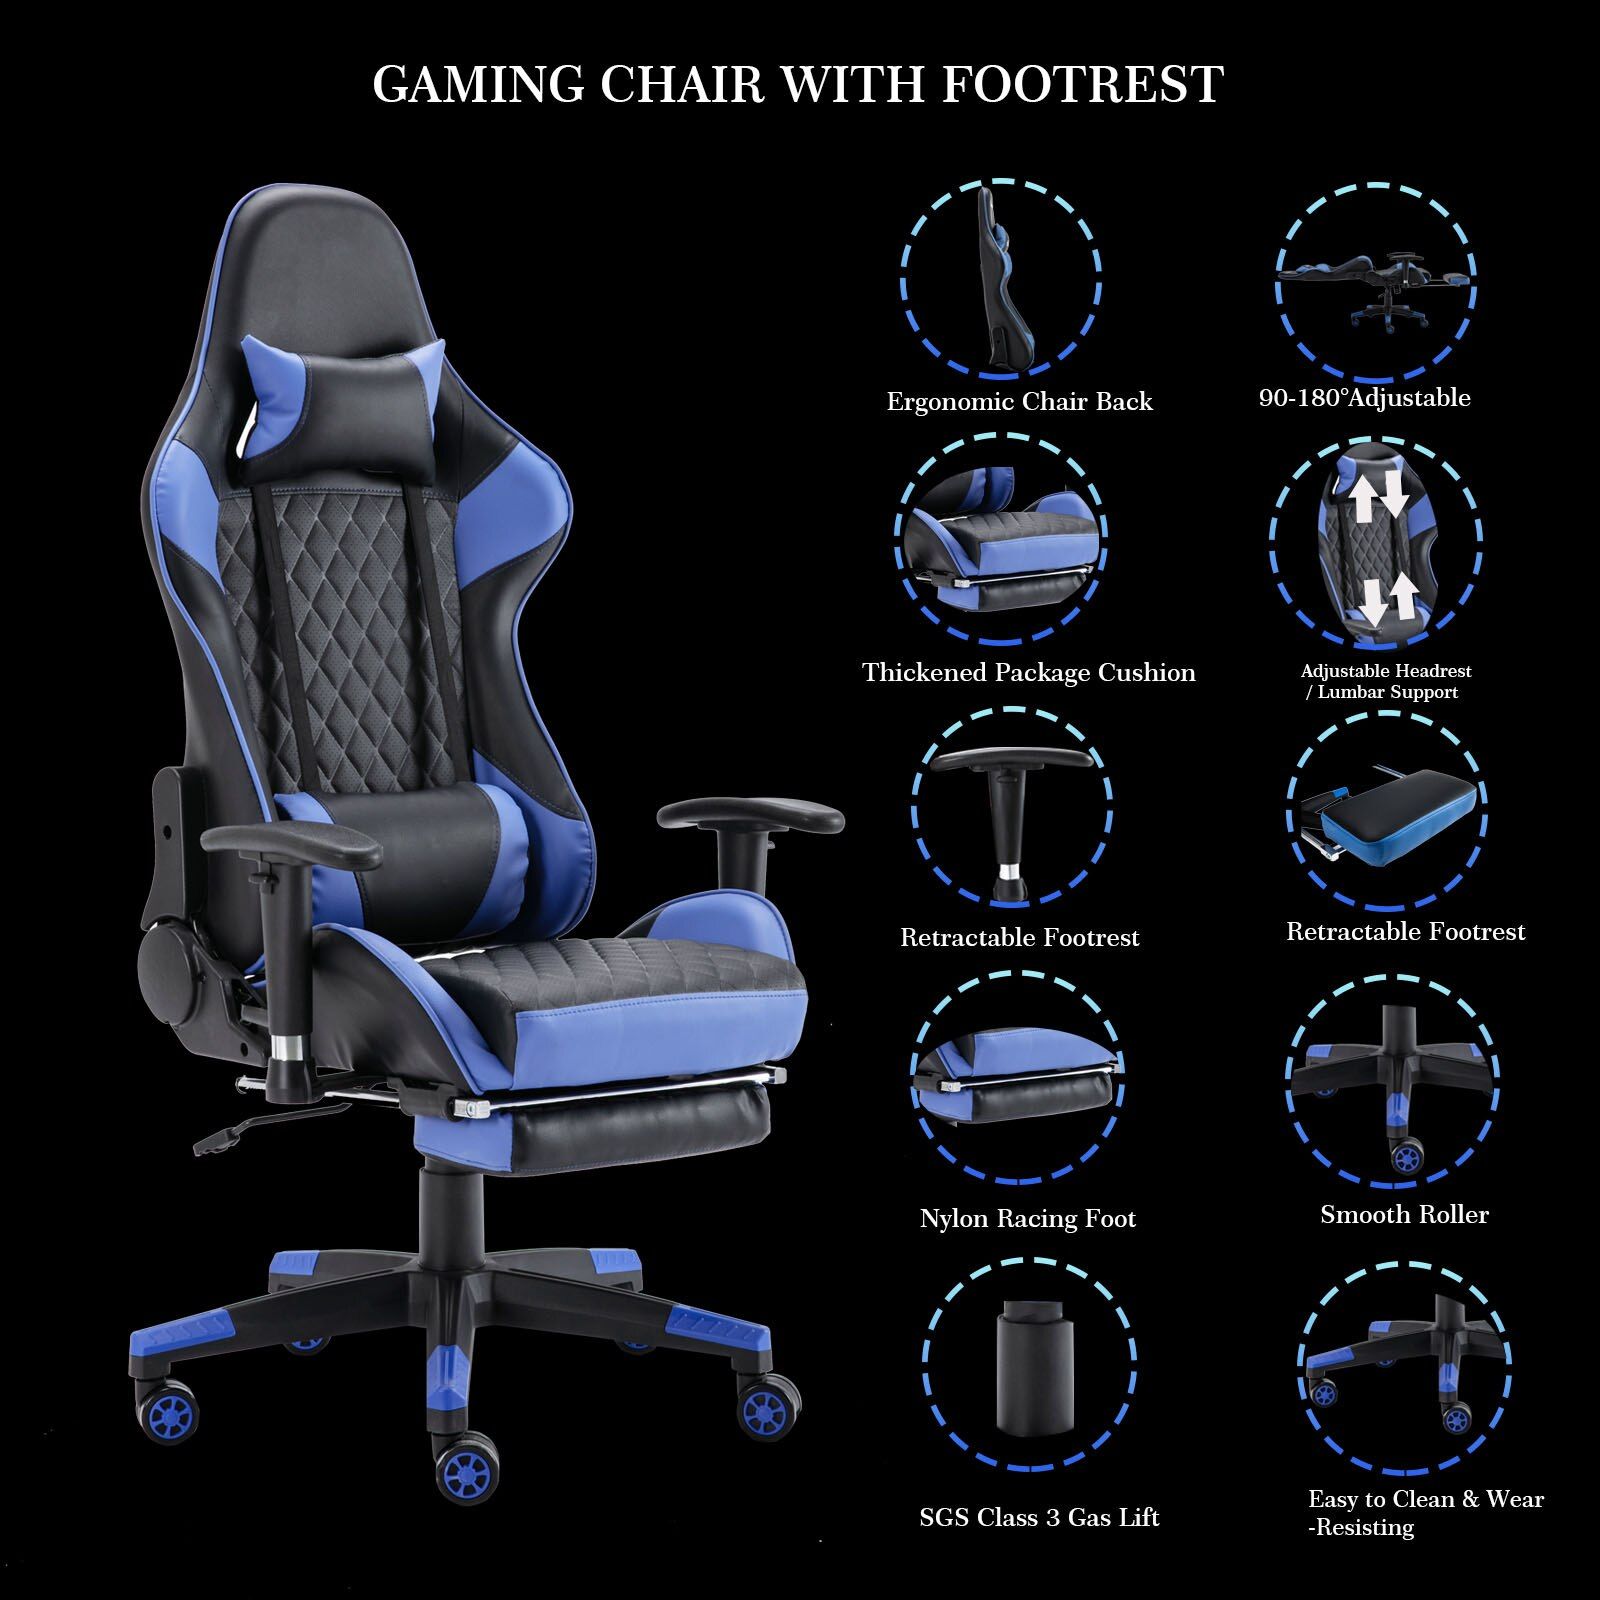 Hd183cd9bb83a480ab5b7898401c773adj - Gaming Chair Computer Armchair Adjustable Armrest And Footrest PVC Household Office Chair Ergonomic Computer Gamer Chair